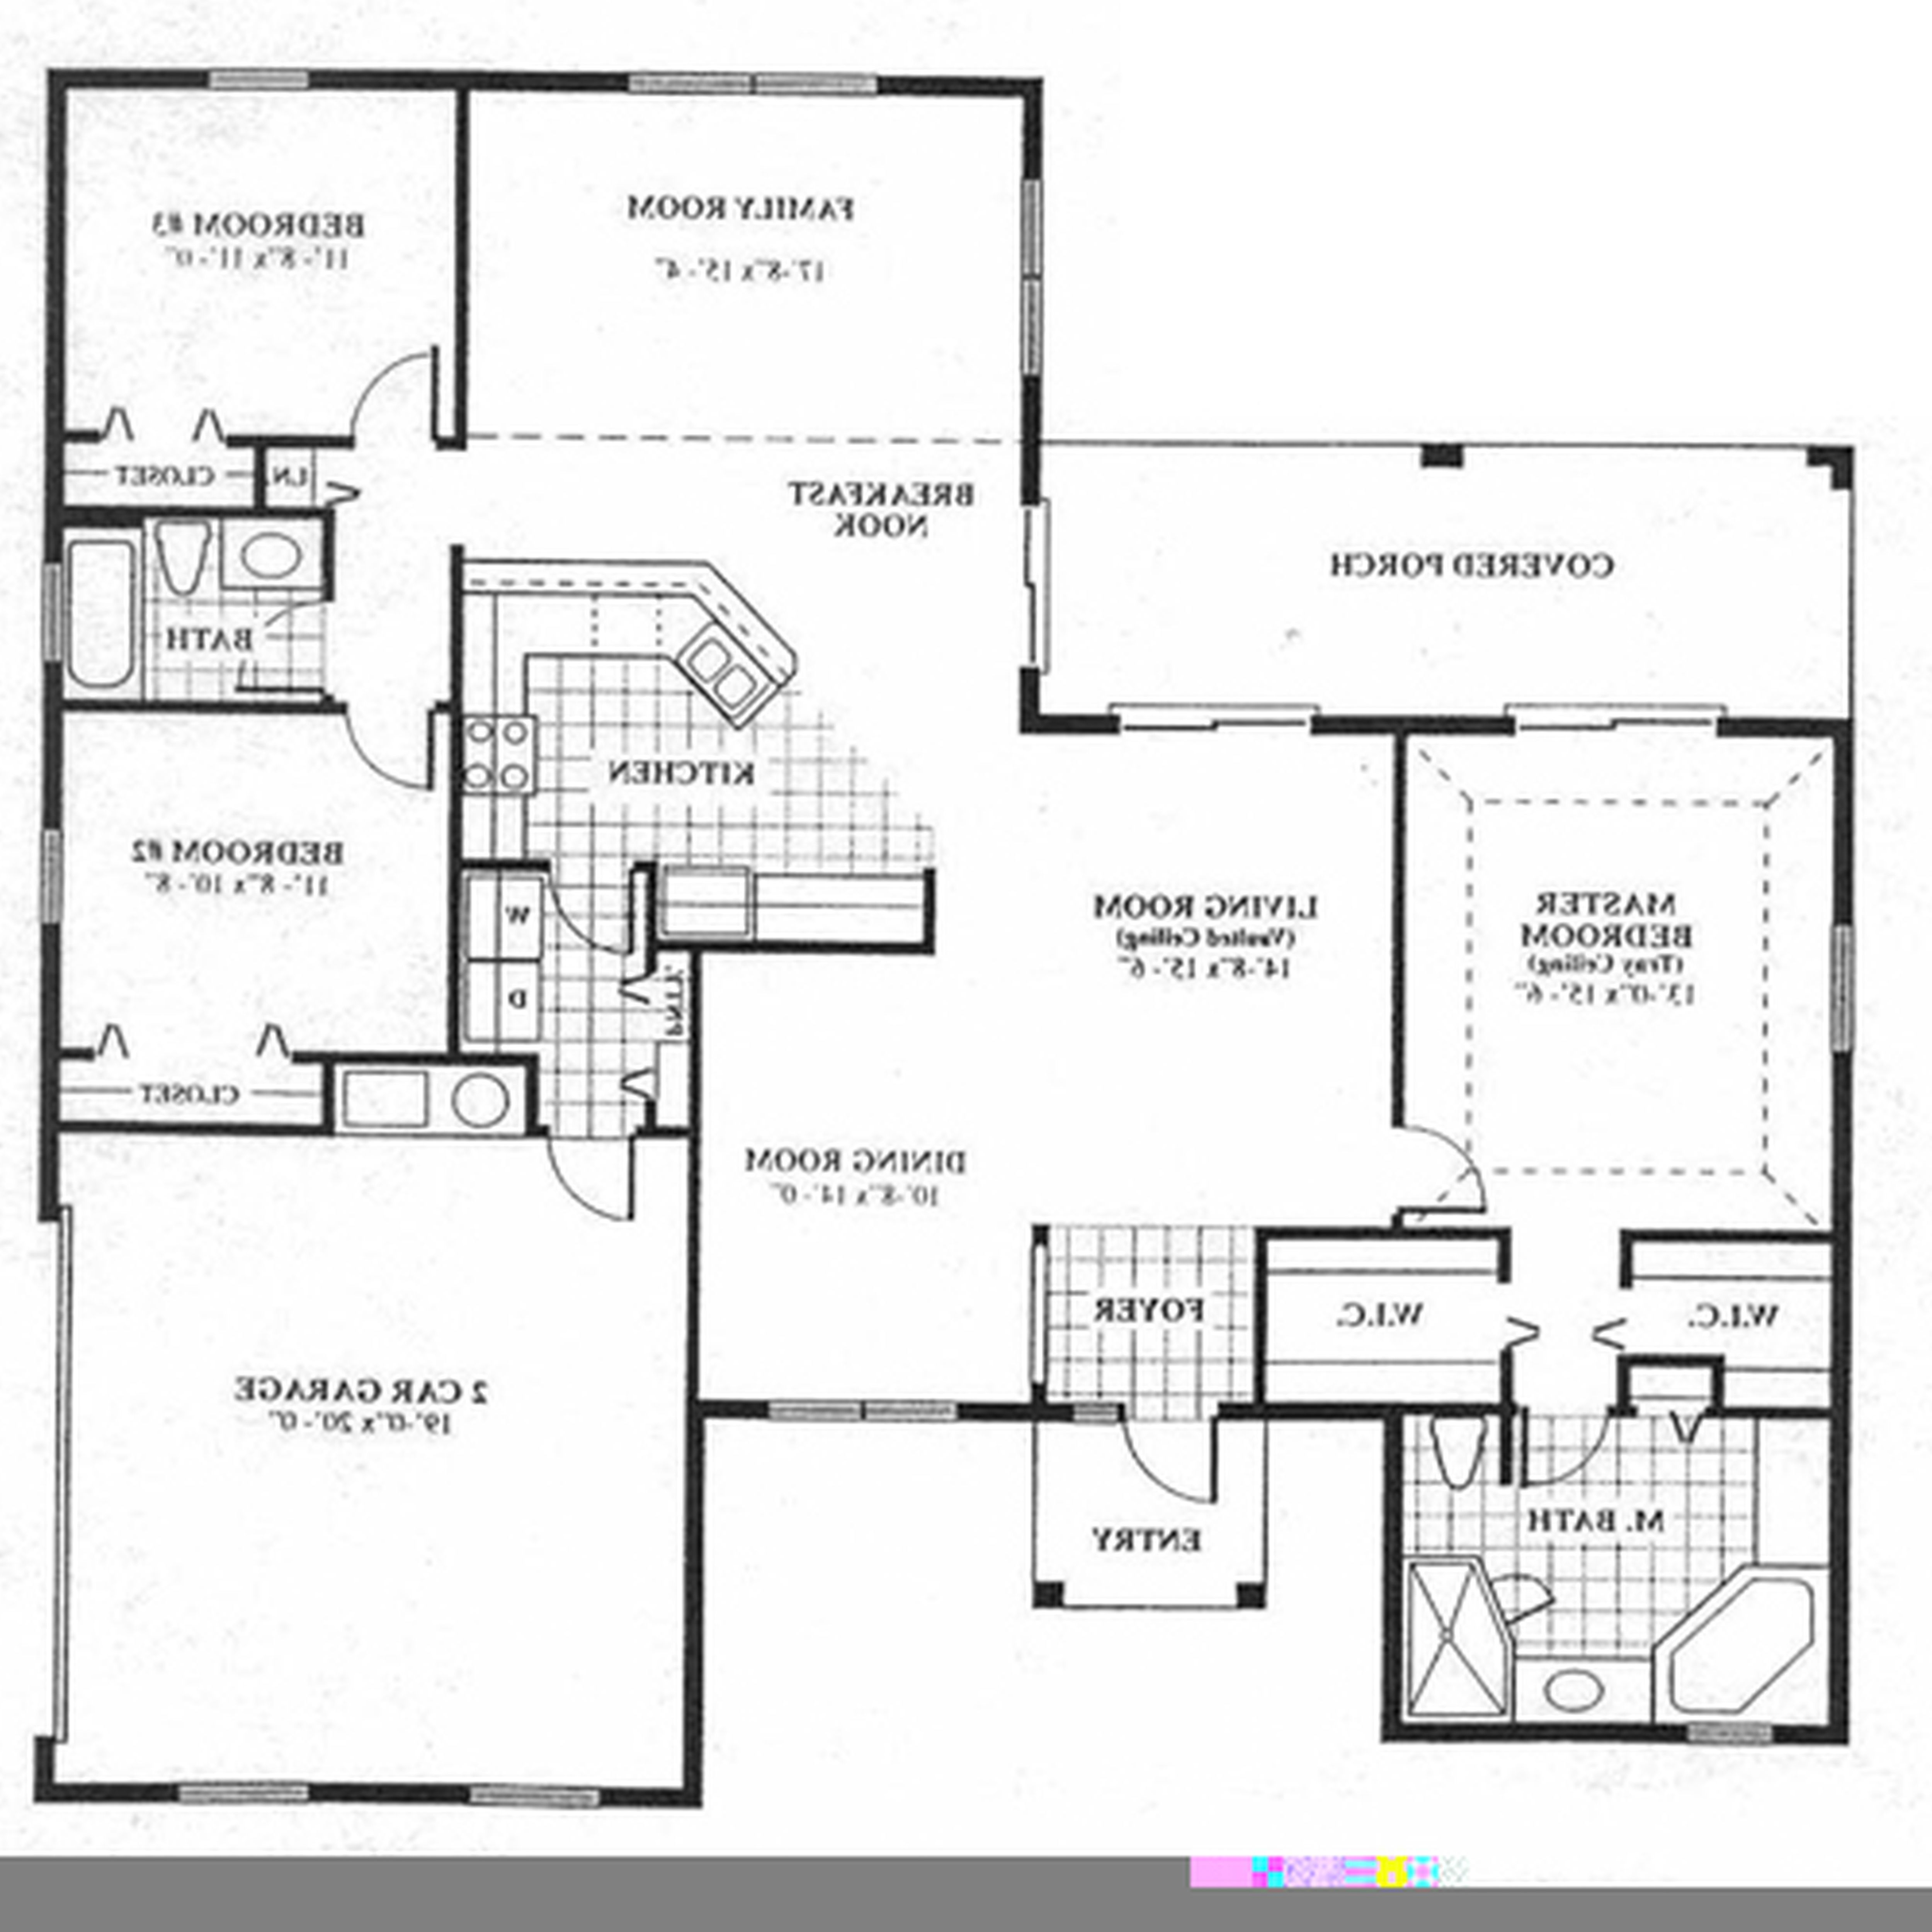 Software Design House Home Room Apartment Kitchen White Luxury Layout Total Pics Best Free Idea architecture interactive floor plan software design plans